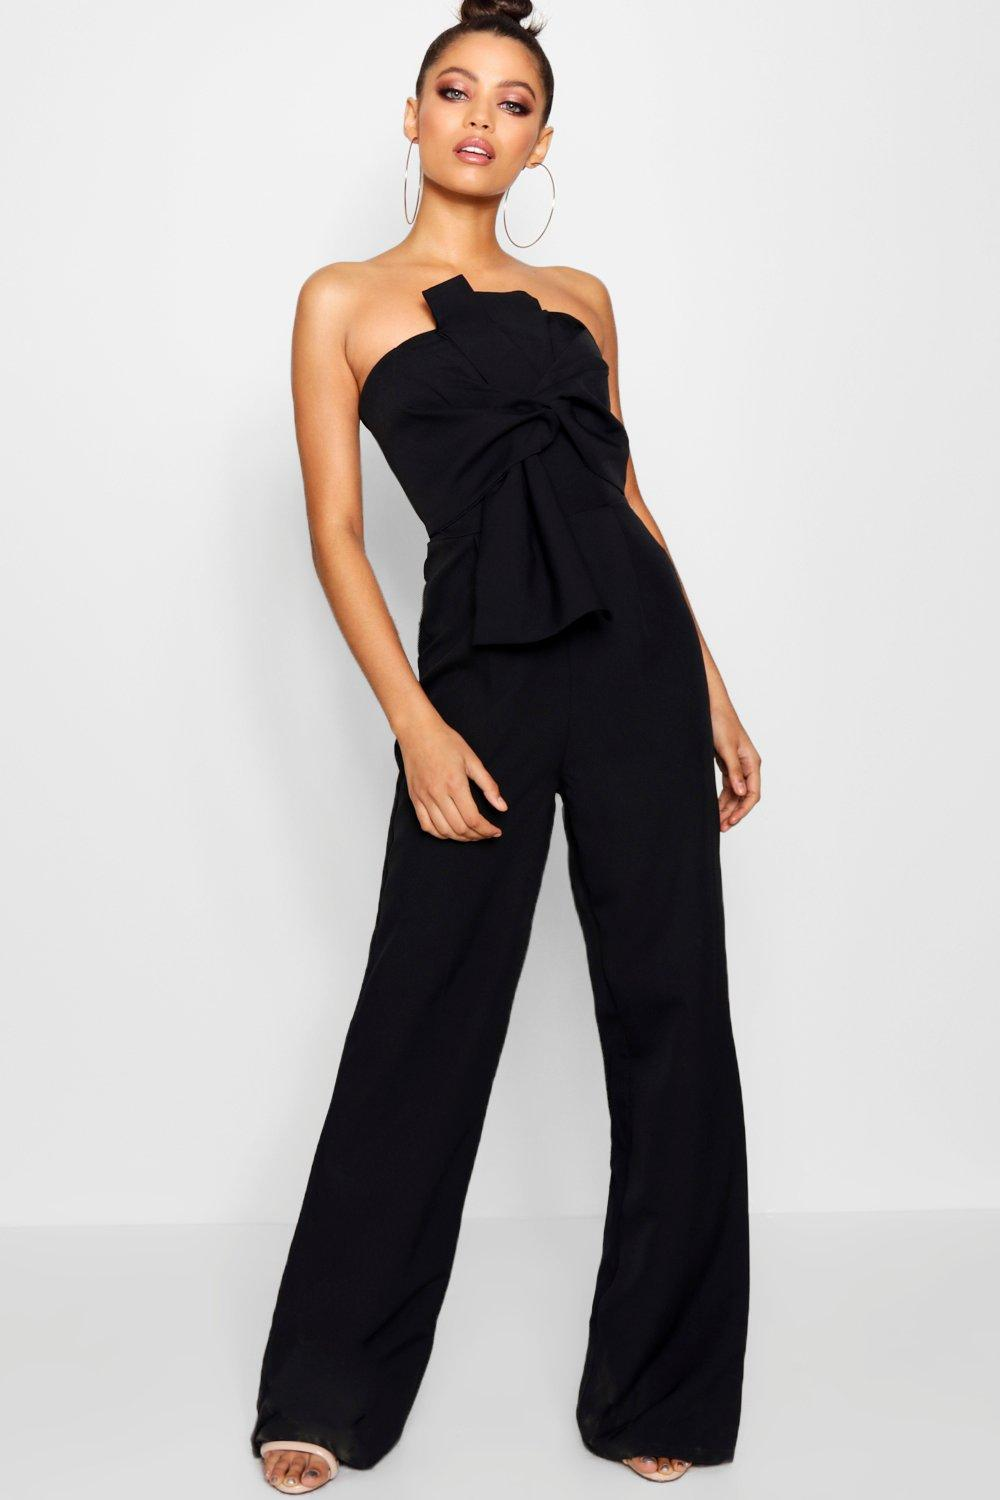 aa642cf549a5 Boohoo Boutique Bow Front Occasion Jumpsuit in Black - Lyst